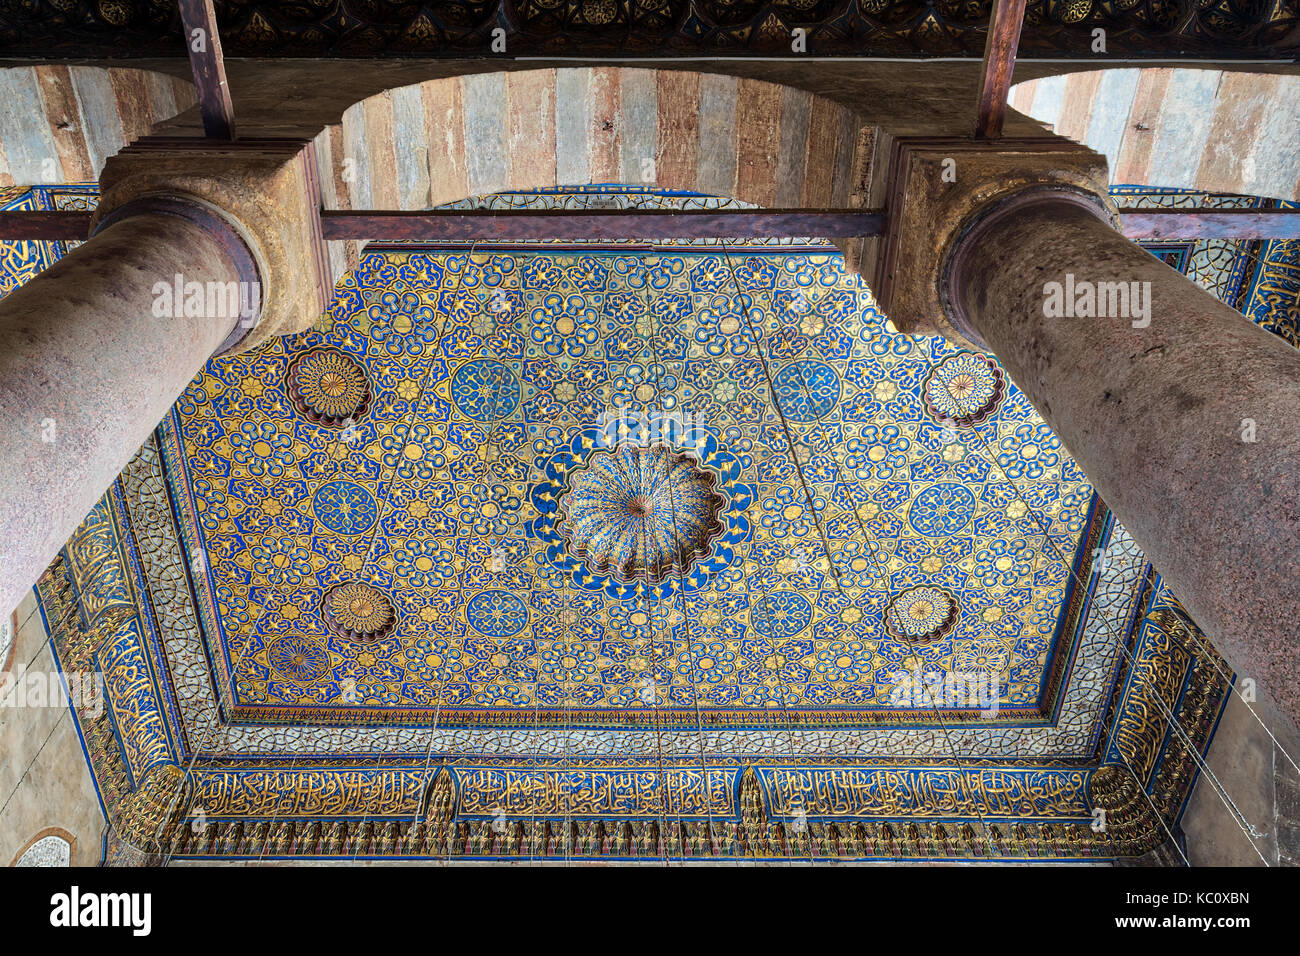 Ornate ceiling with blue and golden floral pattern decorations frammed throught huge arch and two columns at Sultan - Stock Image